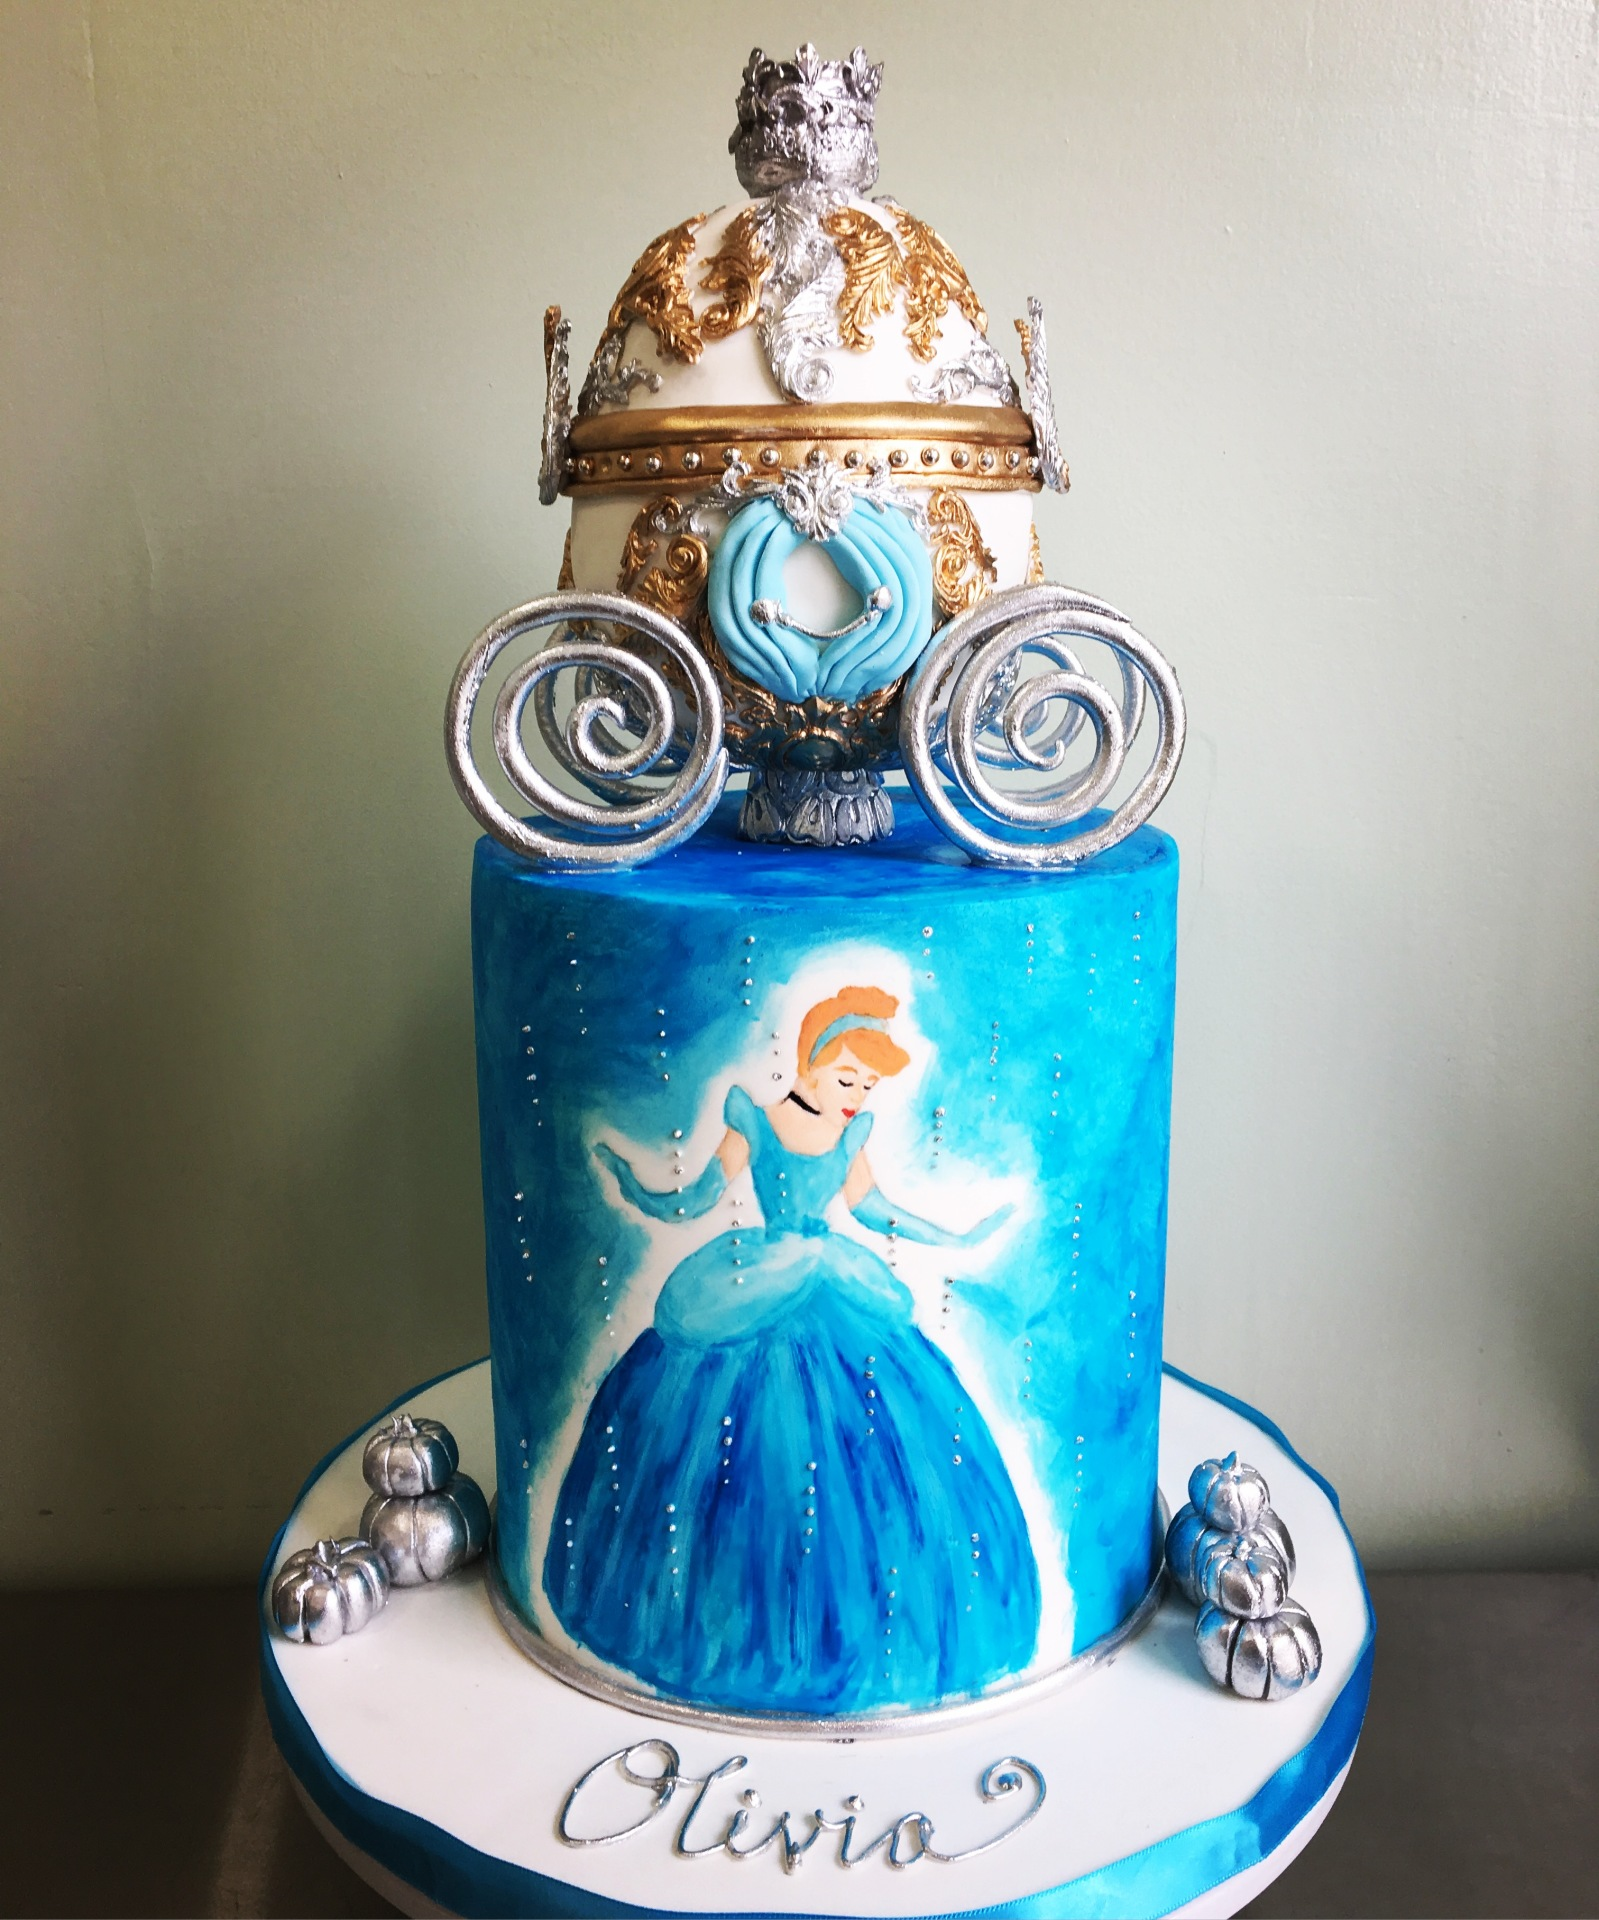 Custom Cakes NJ Hand Painted Cinderella Cake with Carriage